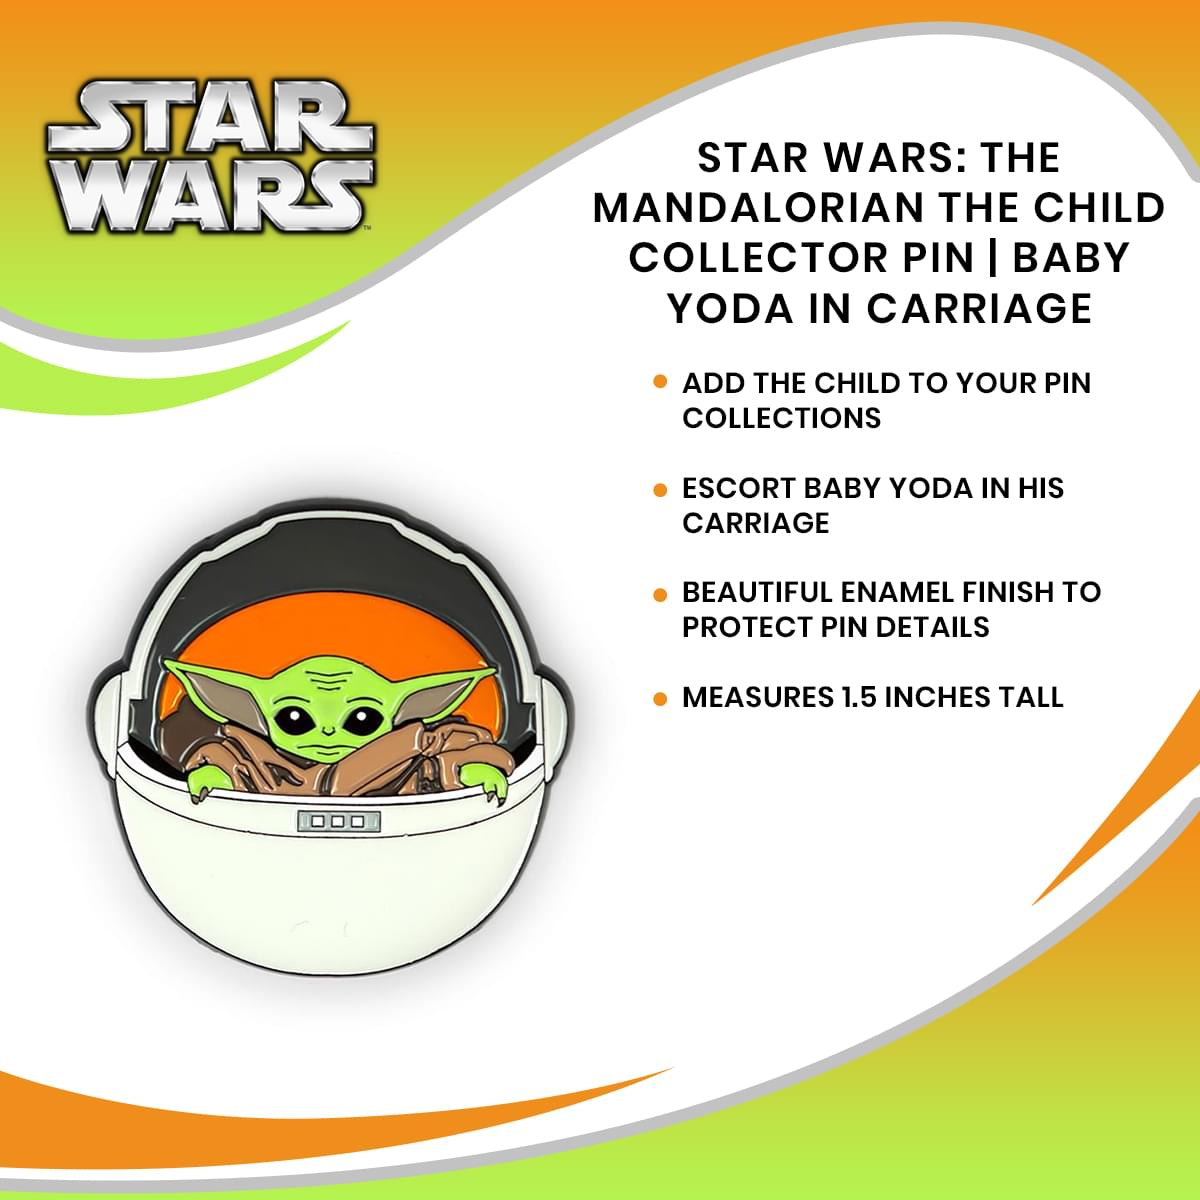 Star Wars: The Mandalorian The Child Collector Pin | Baby Yoda In Carriage